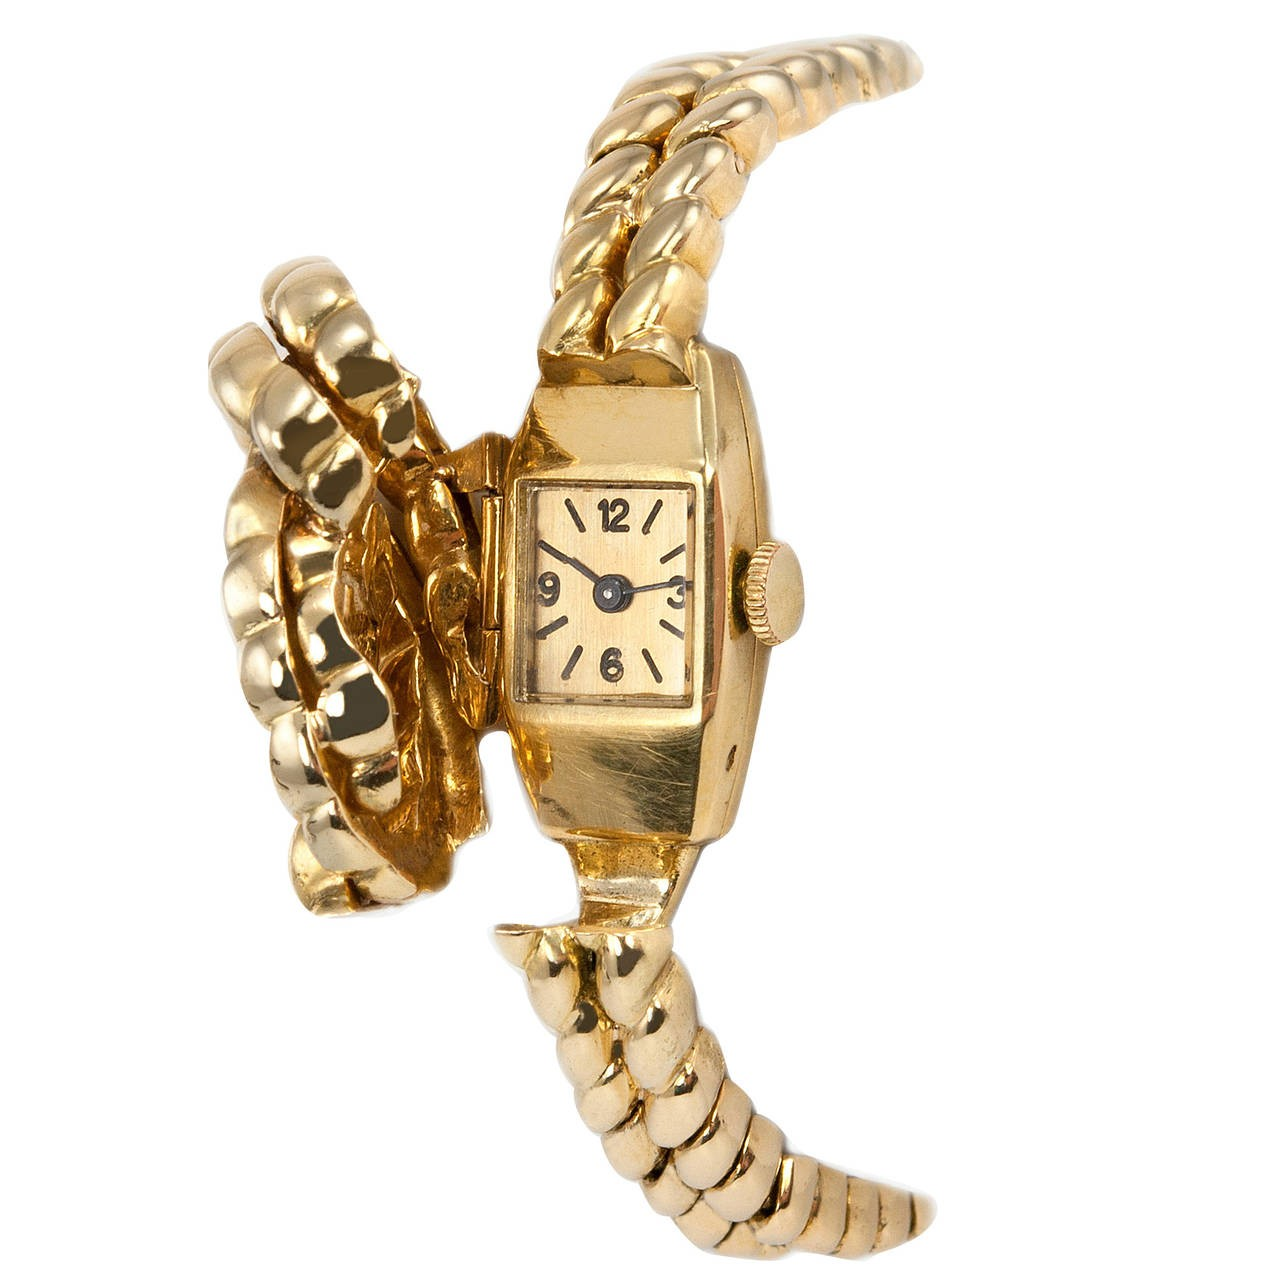 Van Cleef & Arpels Hidden Watch Gold Knot Bracelet, Circa 1960s